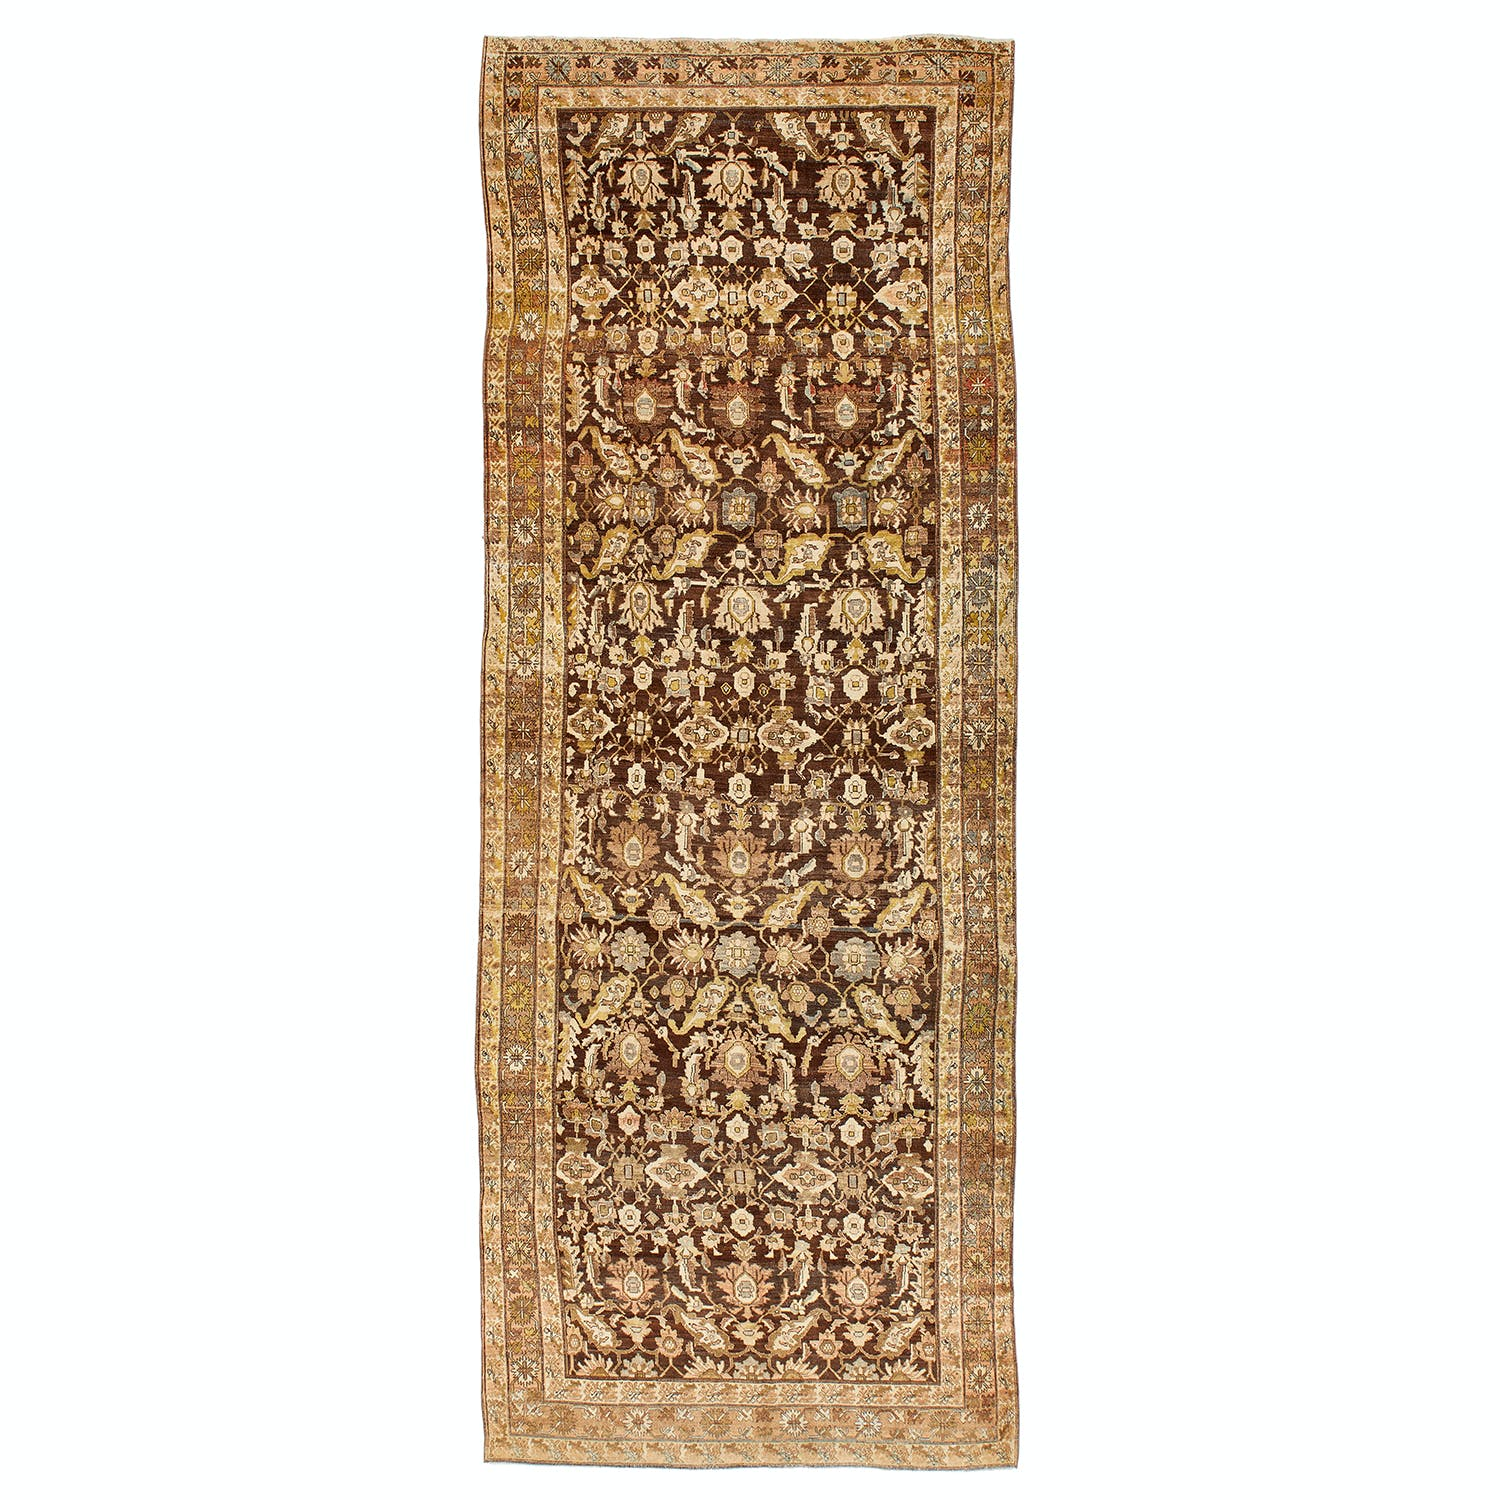 Product Image - Antique Farahan Rug -7'x19'